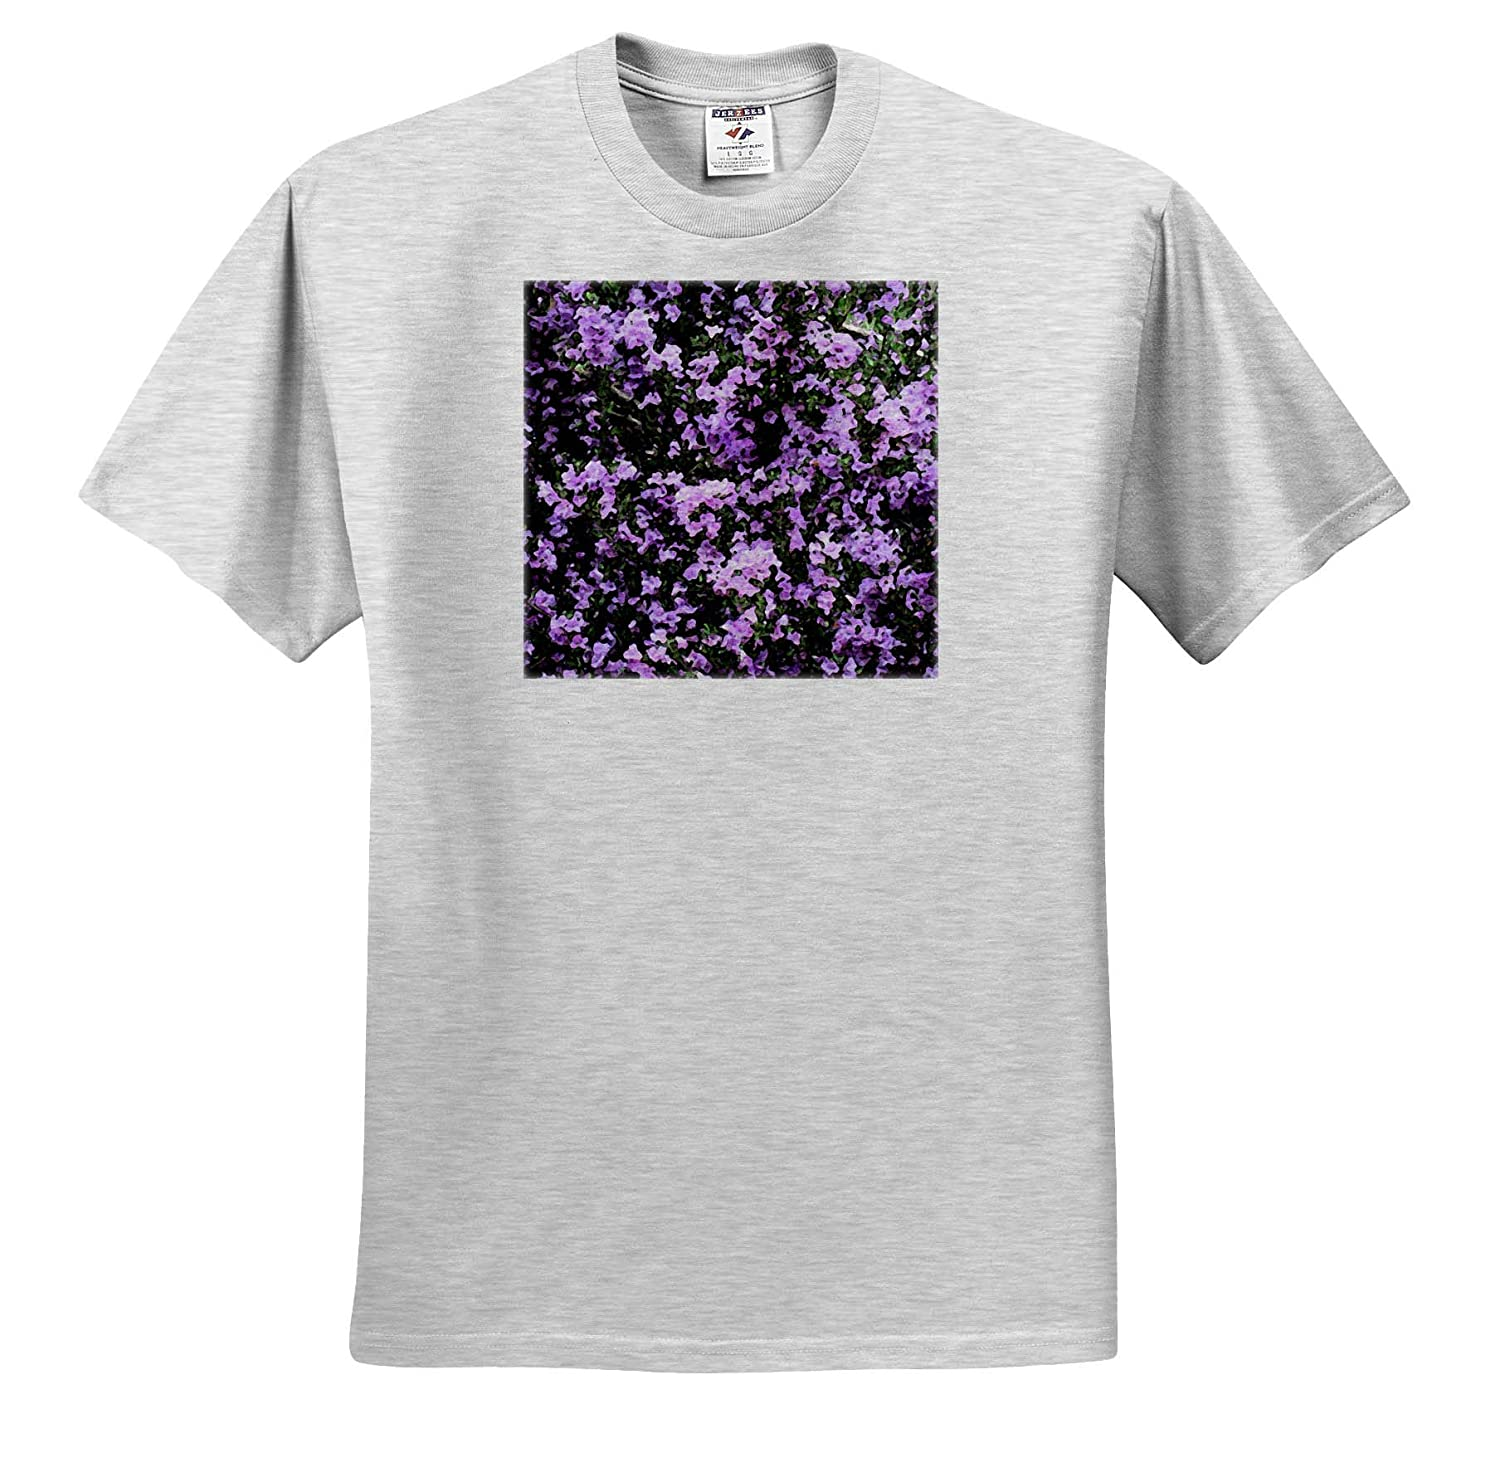 A Purple Flowering Bush Done in a Fresco 3dRose Jos Fauxtographee T-Shirts Fresco Purple Flowers